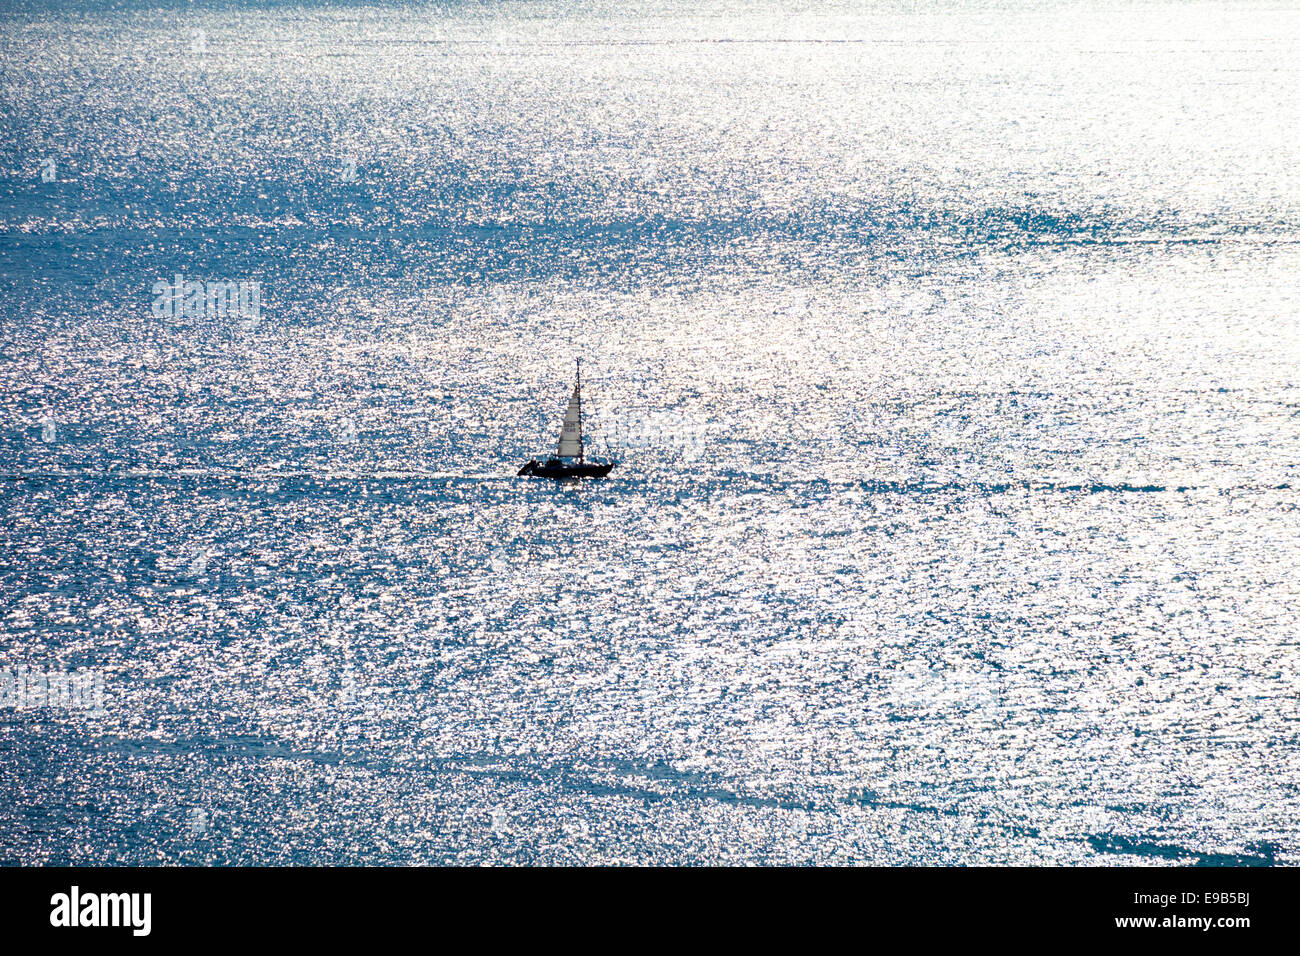 A yacht in the Sound of Jura about to enter Loch Sween, Argyll & Bute, Scotland UK - Stock Image